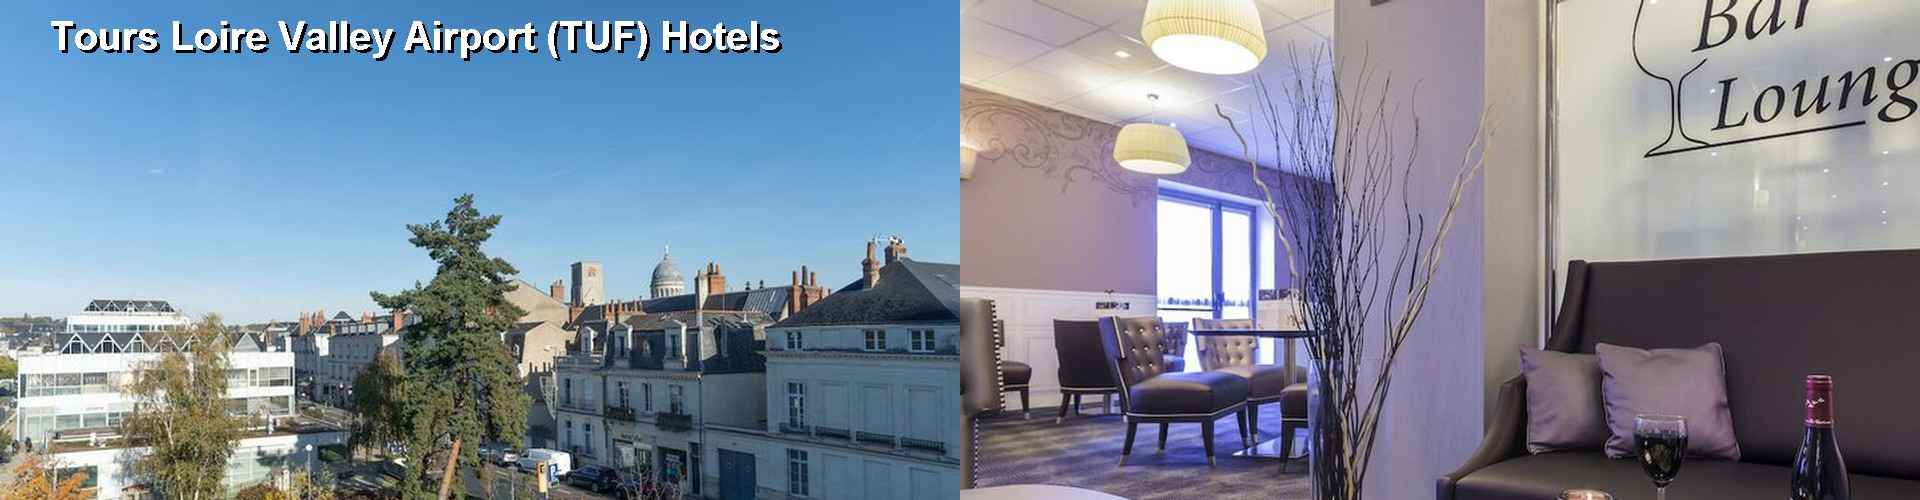 Inter Hotel La Terrasse Tours Hotels Near Tours Loire Valley Airport Tuf In Indre Et Loire